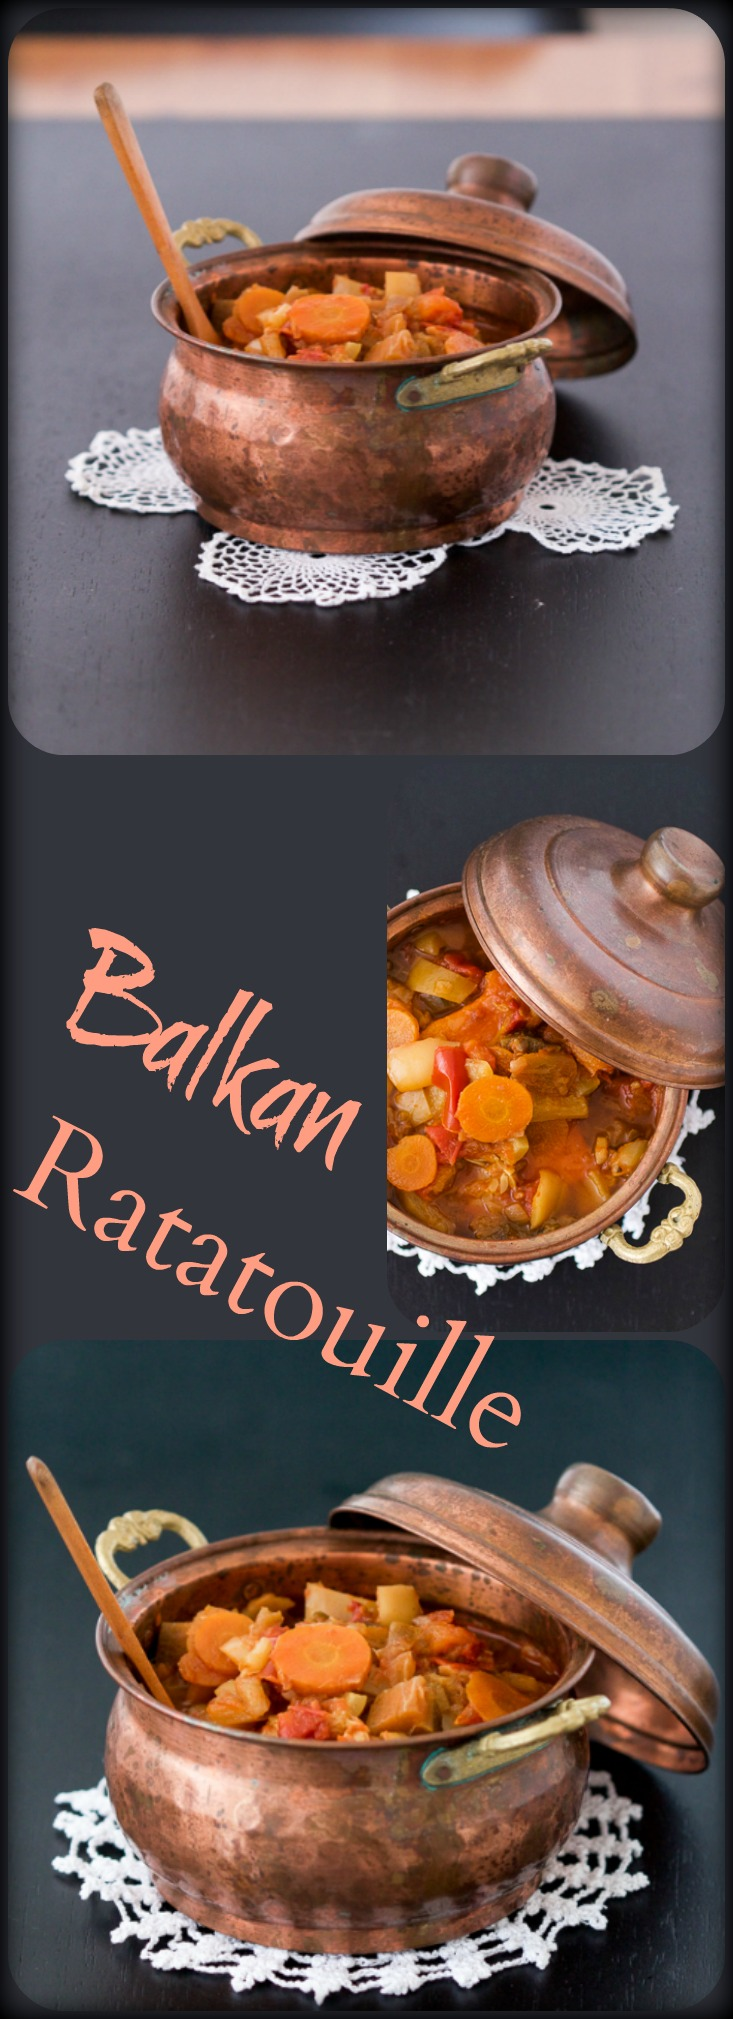 Balkan Ratatouille (Djuveč) is a rich vegetarian dinner dish. Meat lovers are welcome to add grilled chicken or beef on the side.